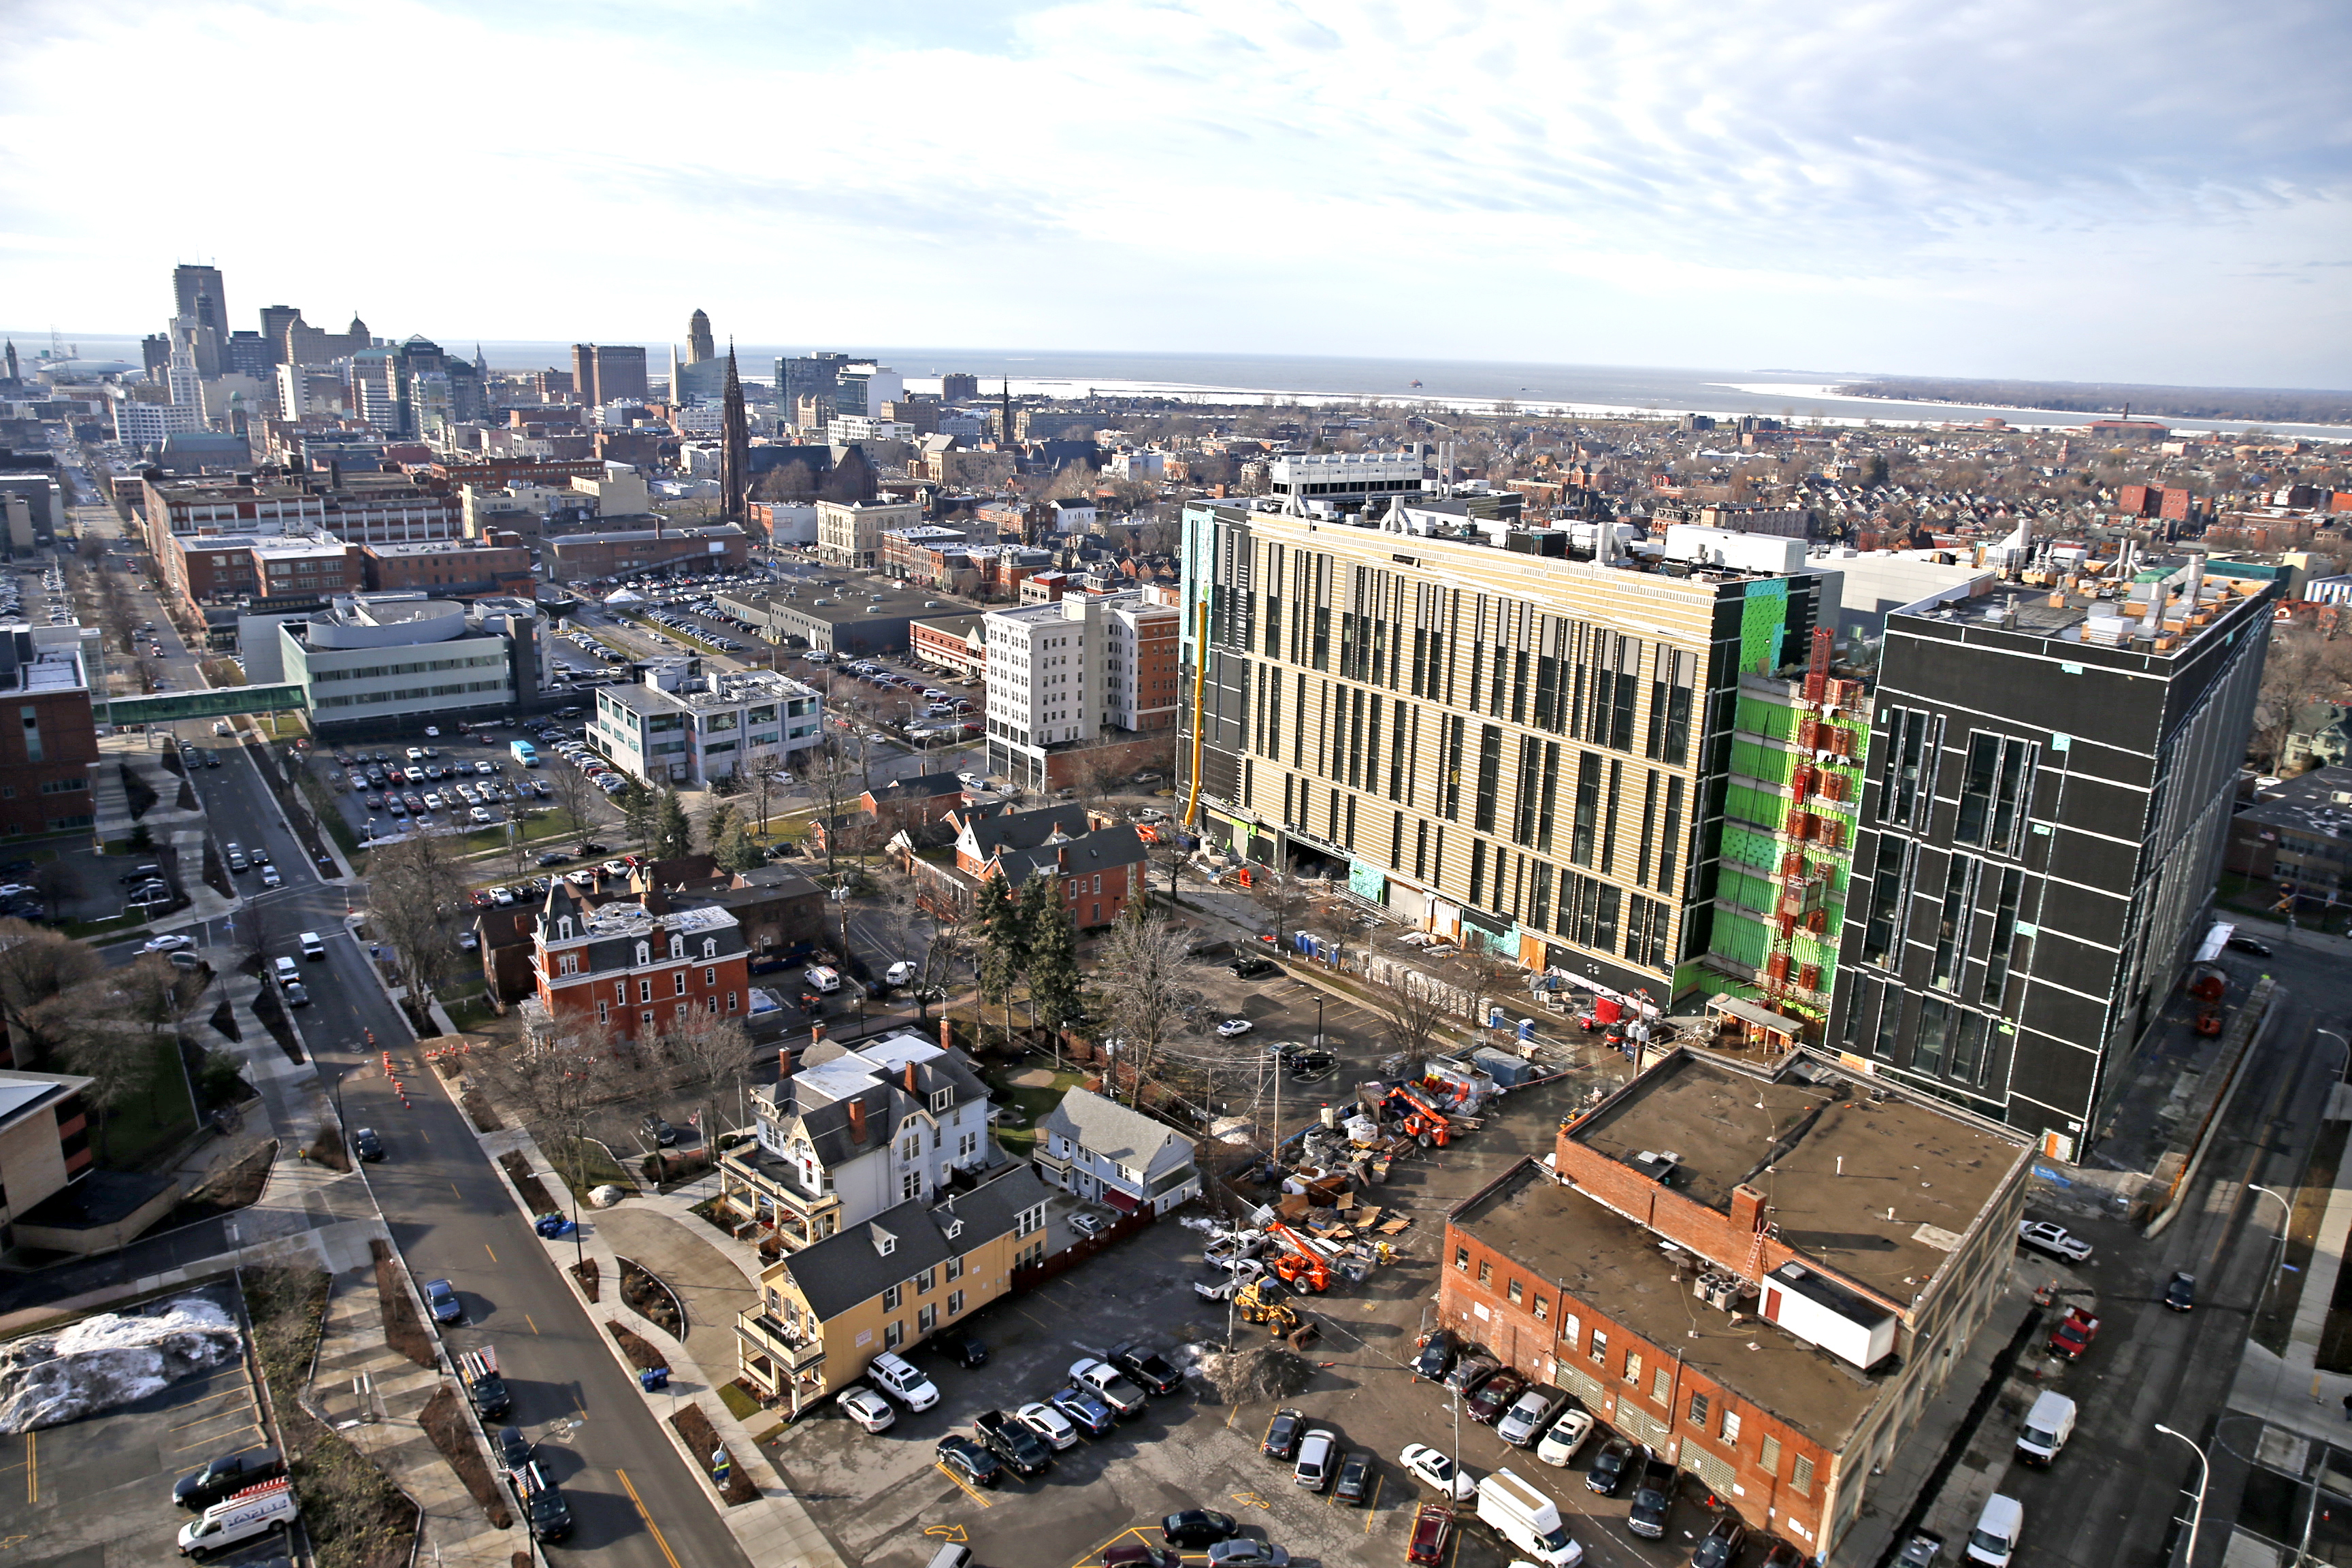 Construction continues on the UB Jacobs School of Medicine as seen from the roof of Buffalo General on Tuesday, Jan. 10, 2017.  (Robert Kirkham/Buffalo News)